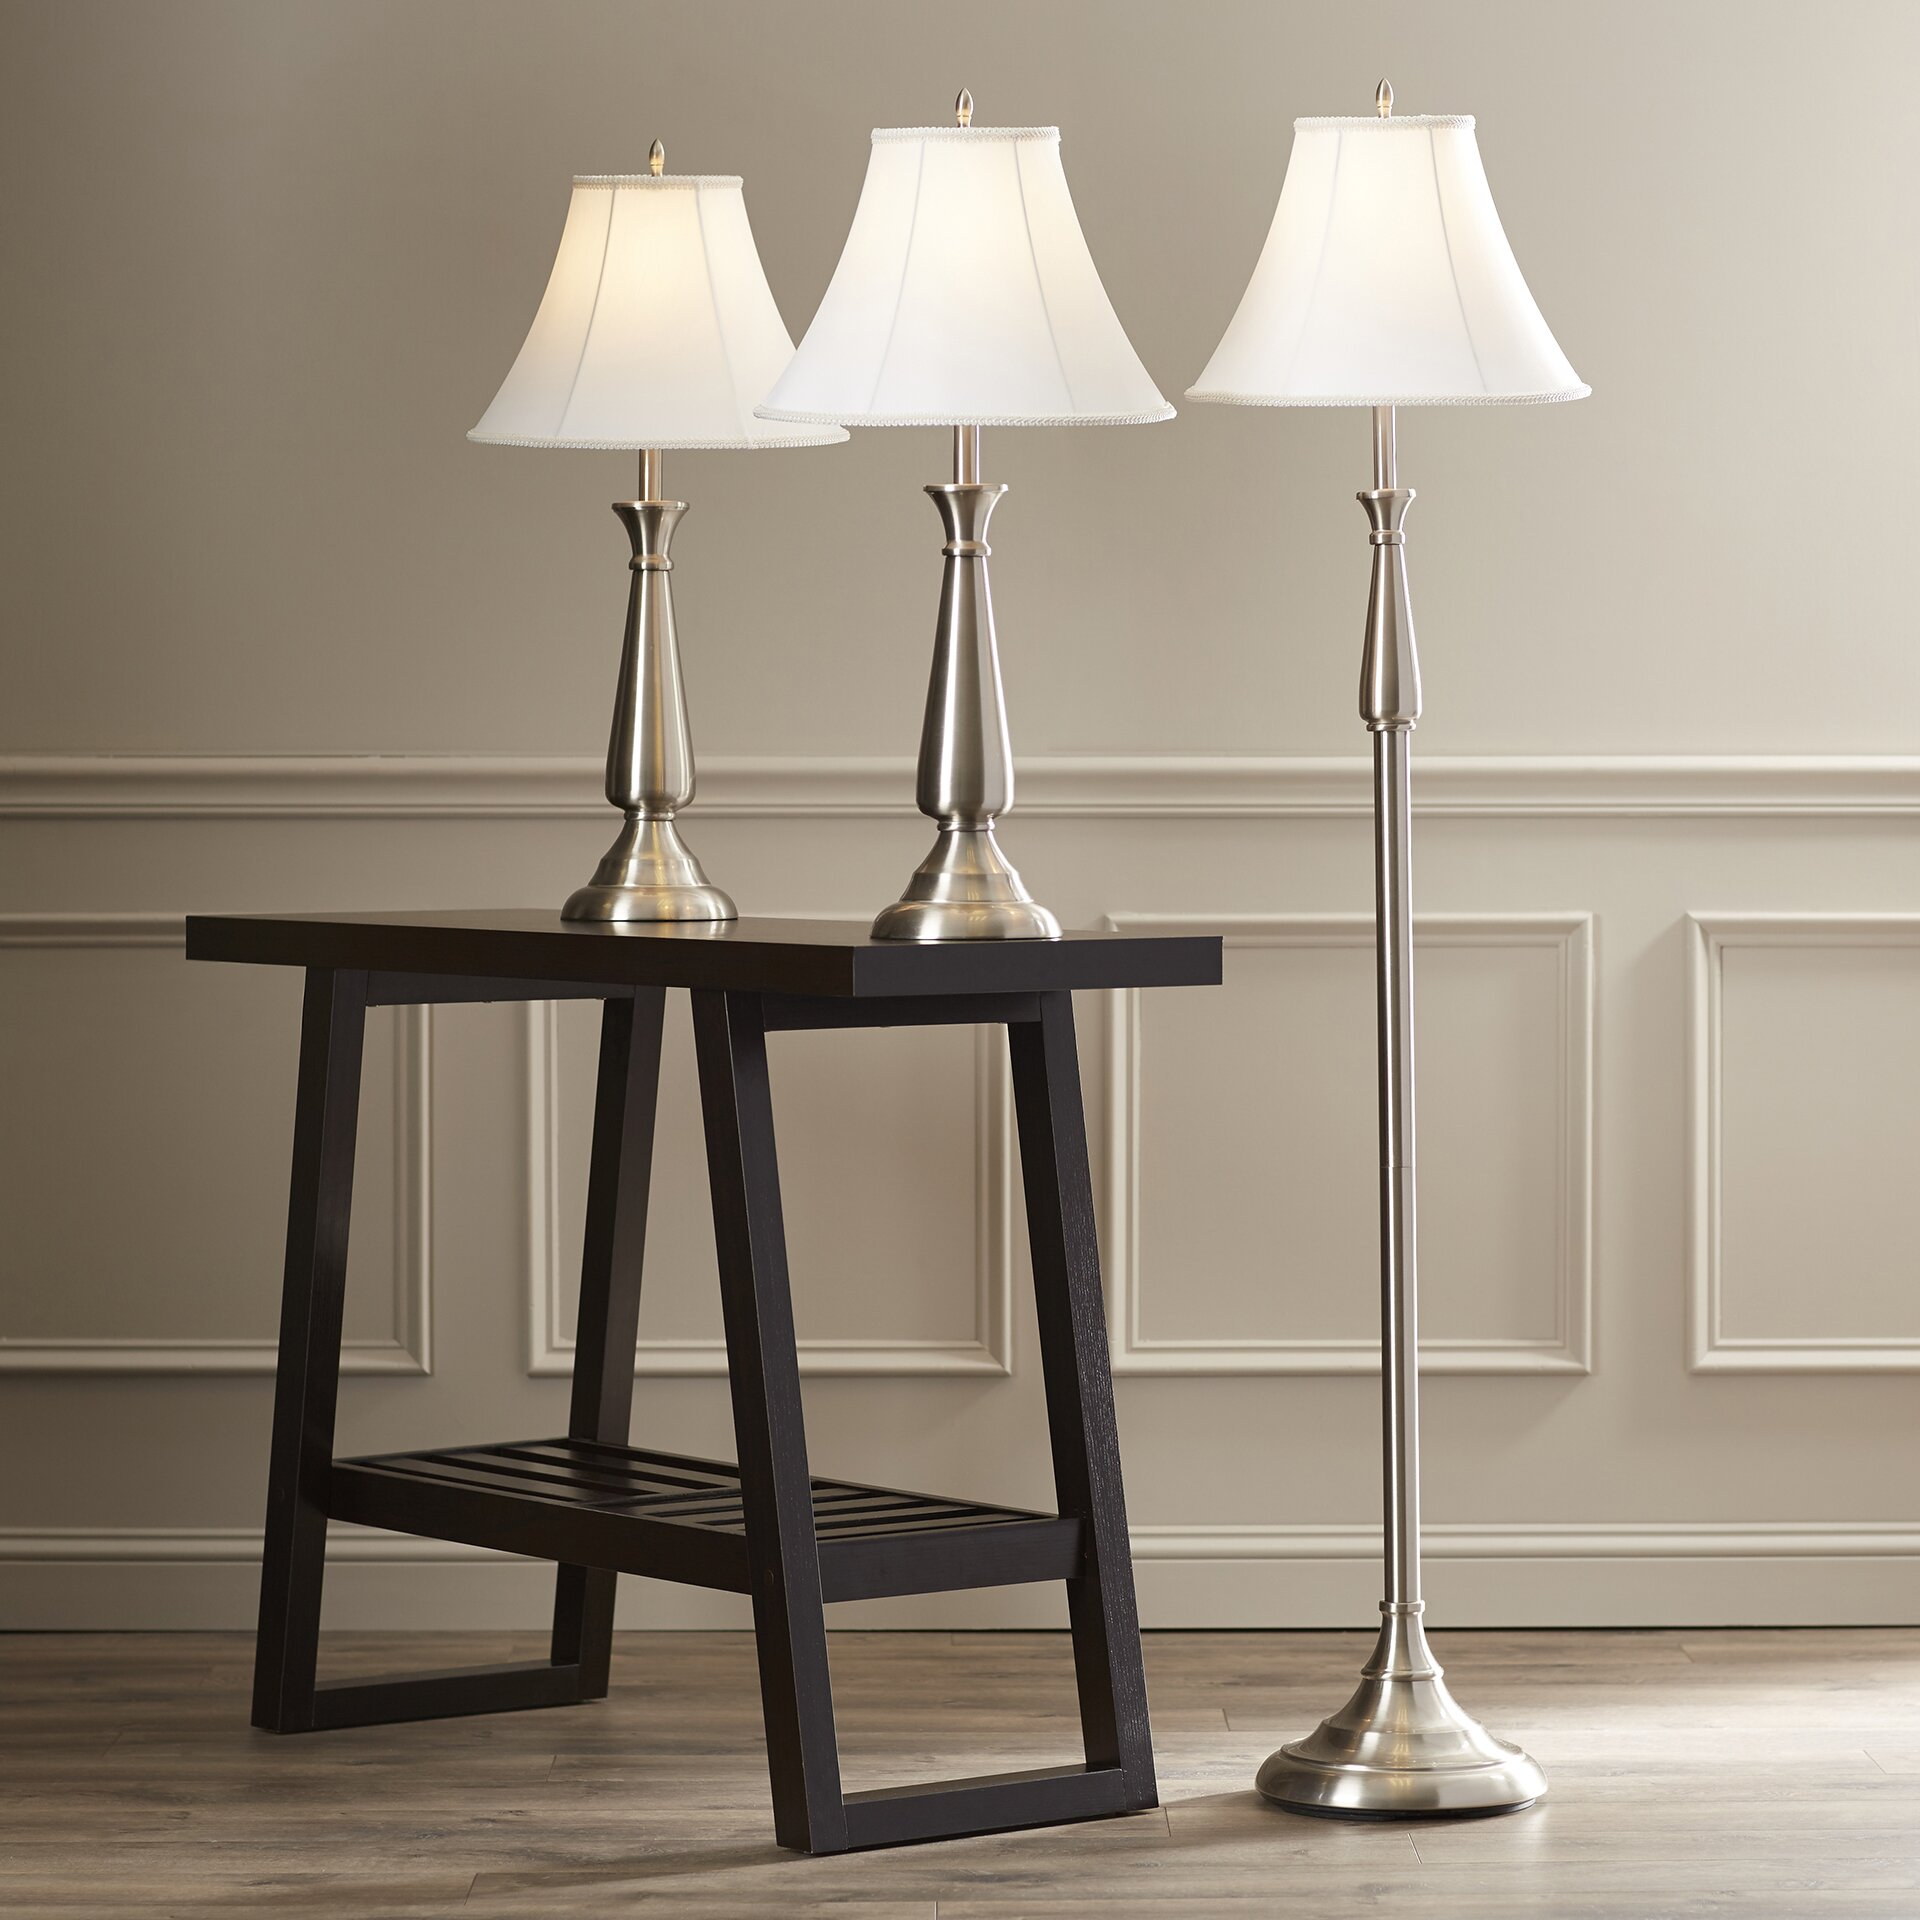 Darby Home Co Marion 3 Piece Table and Floor Lamp Set & Reviews ...:Darby Home Co® Marion 3 Piece Table and Floor Lamp Set,Lighting